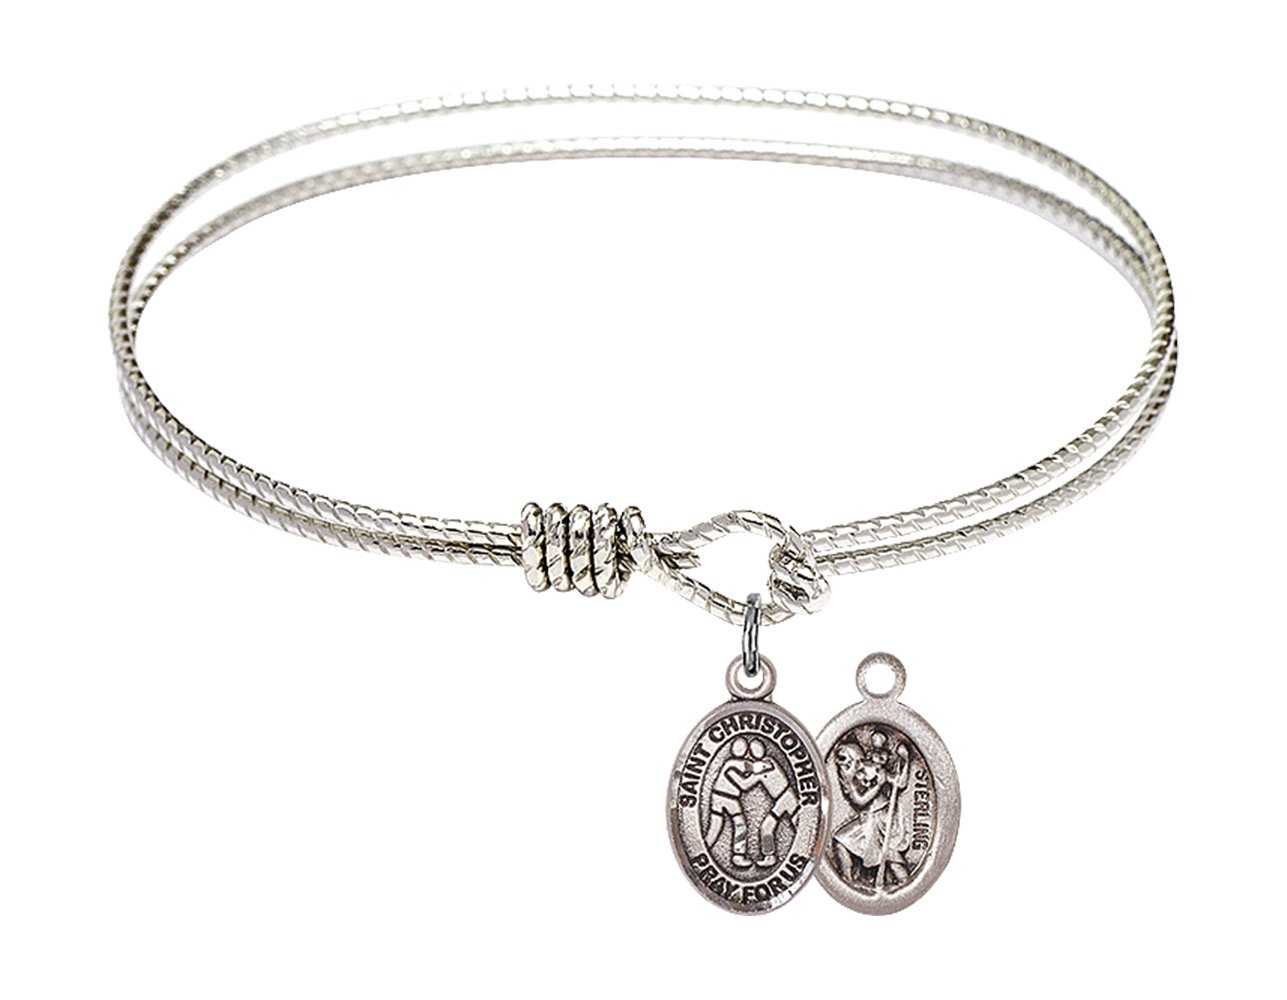 6 1/4 inch Oval Eye Hook Bangle Bracelet with a St. Christopher/Wrestling charm. by F A Dumont